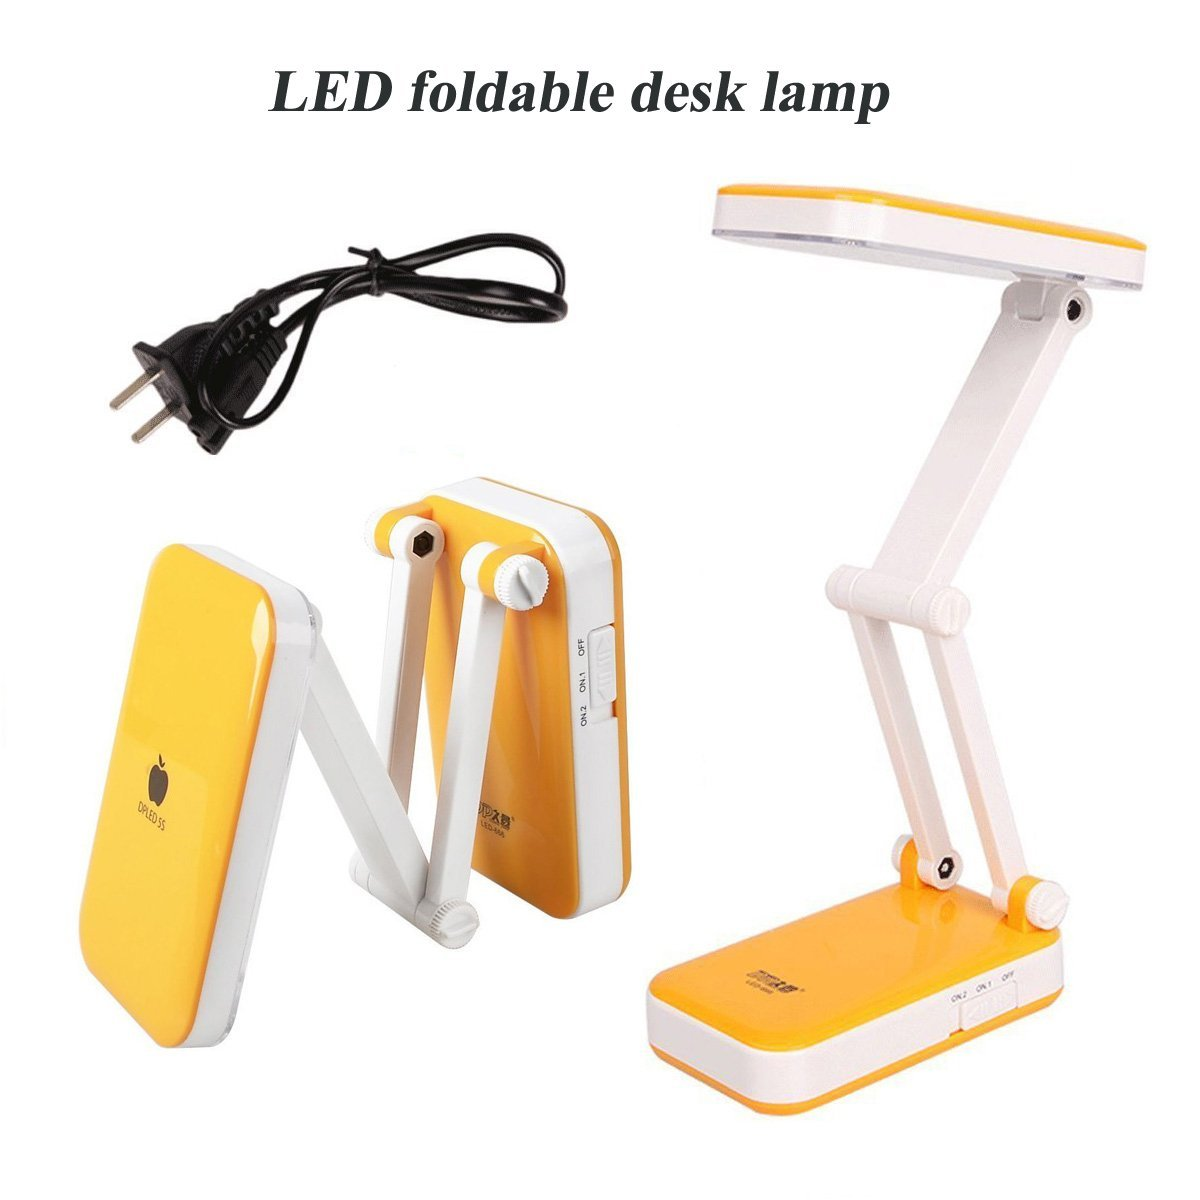 Fashion Folding LED Desk Lamp Modern Table Lamps Rechargable Portable  Energy Saving Lamp Bedside Lights Led Student Lamps In LED Desk Lamps From  Lights ...